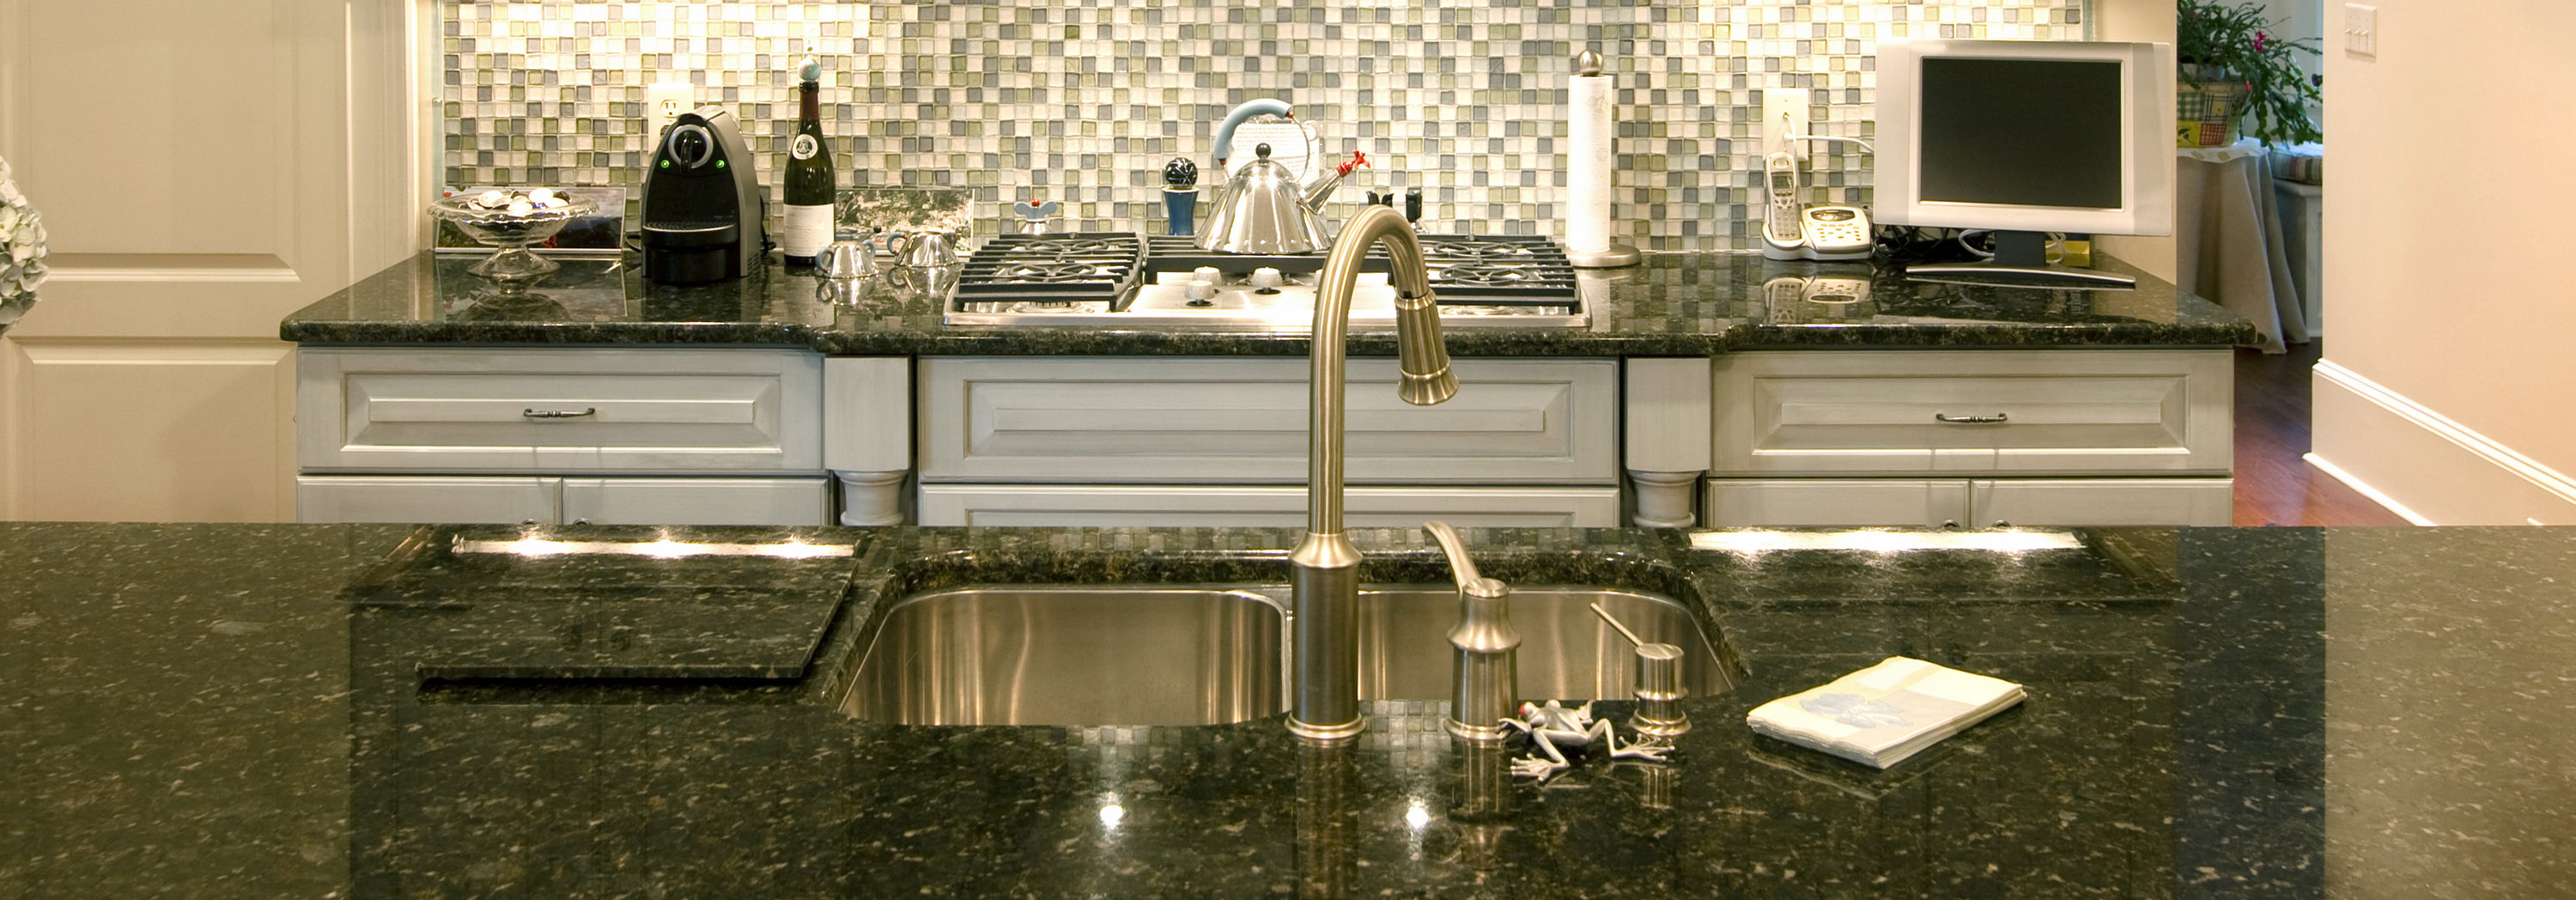 kitchen faucet prices install or